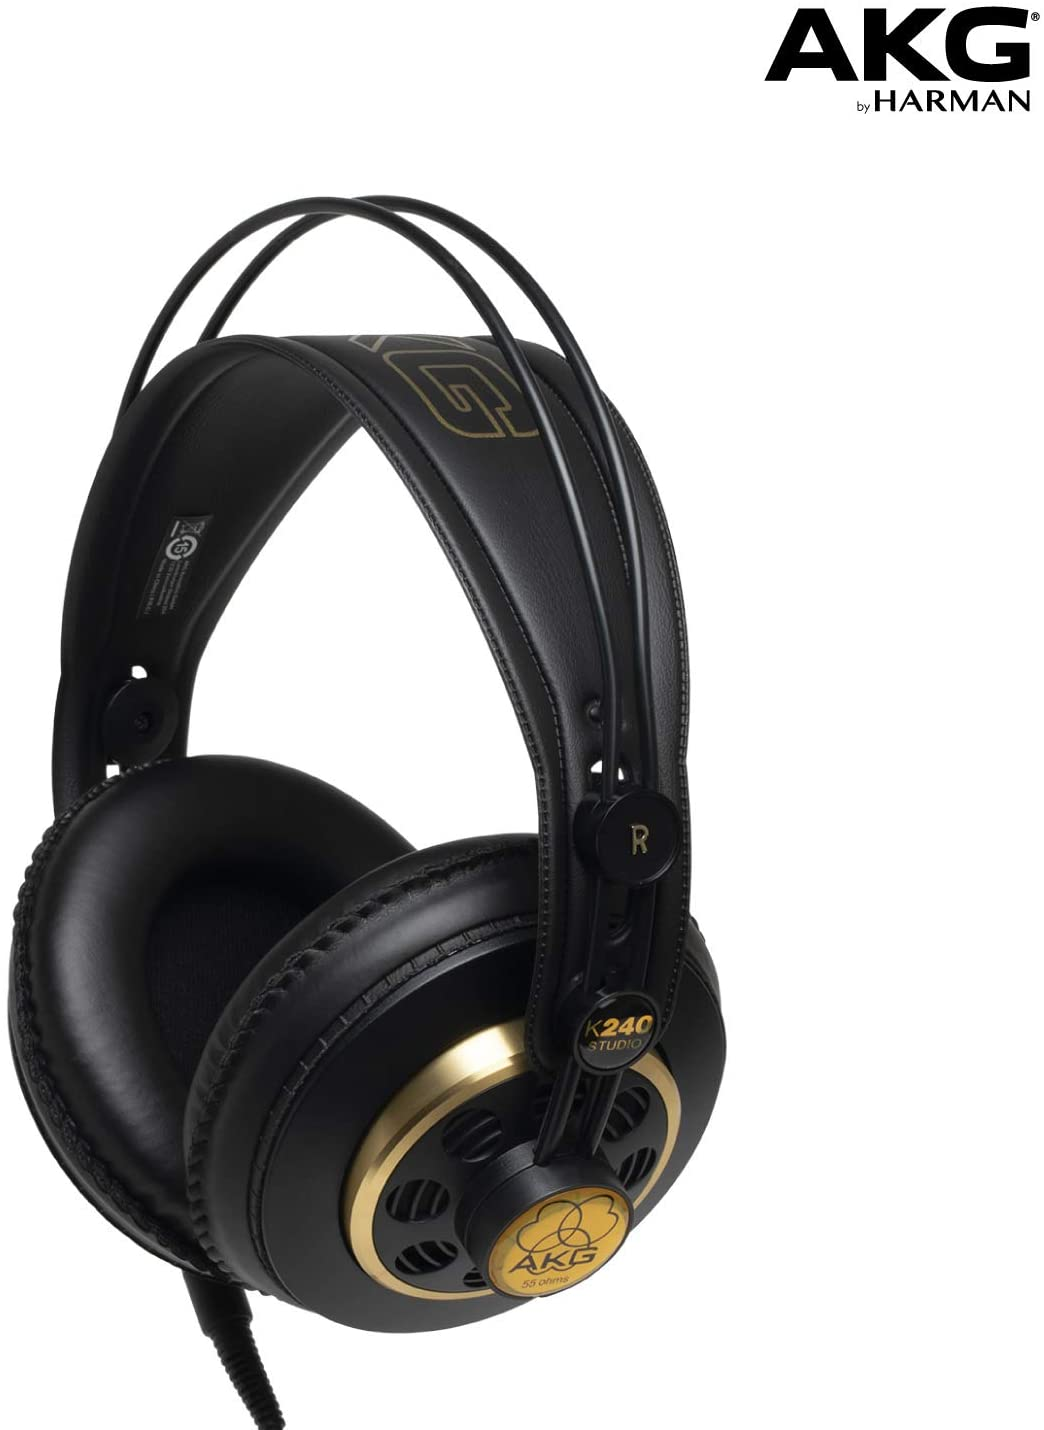 Headphones for VoiceOver artists professional recording studio at home. Home recording studio headphones.